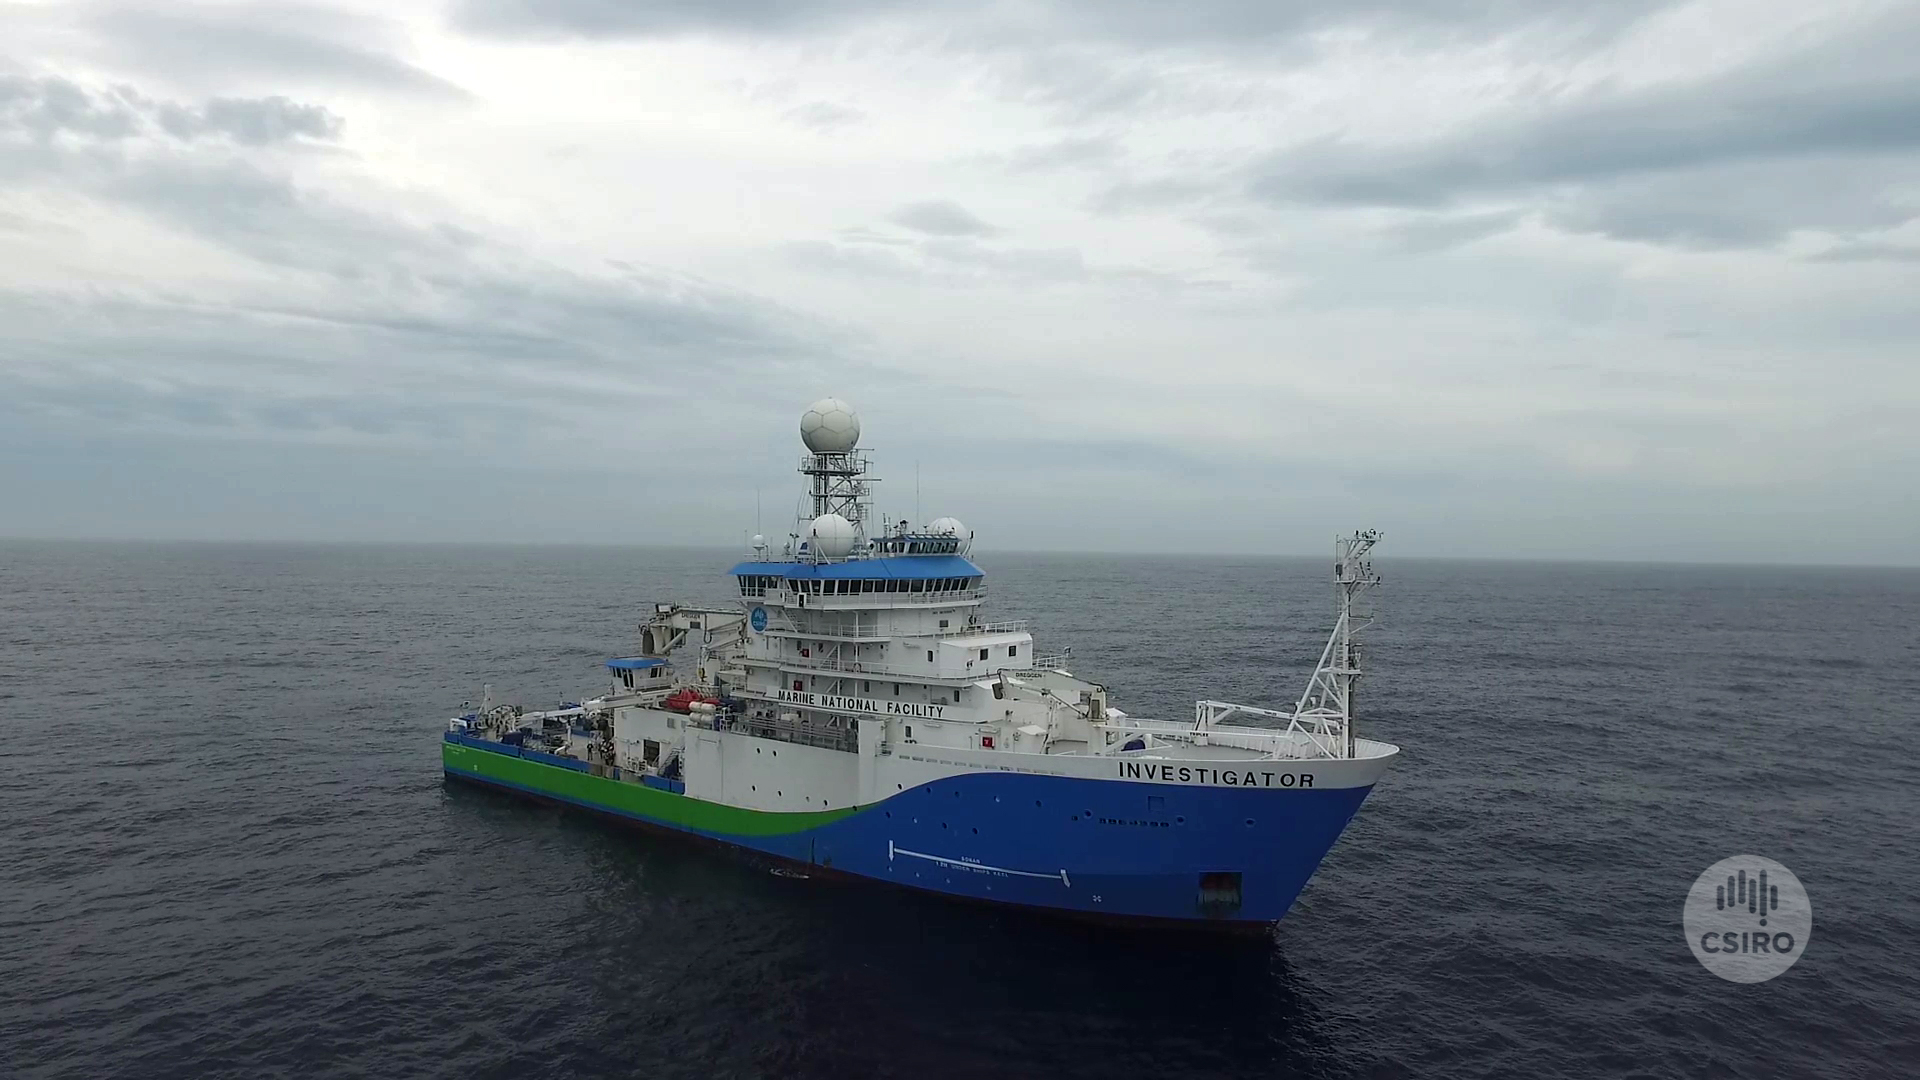 Research vessel Investigator at sea.